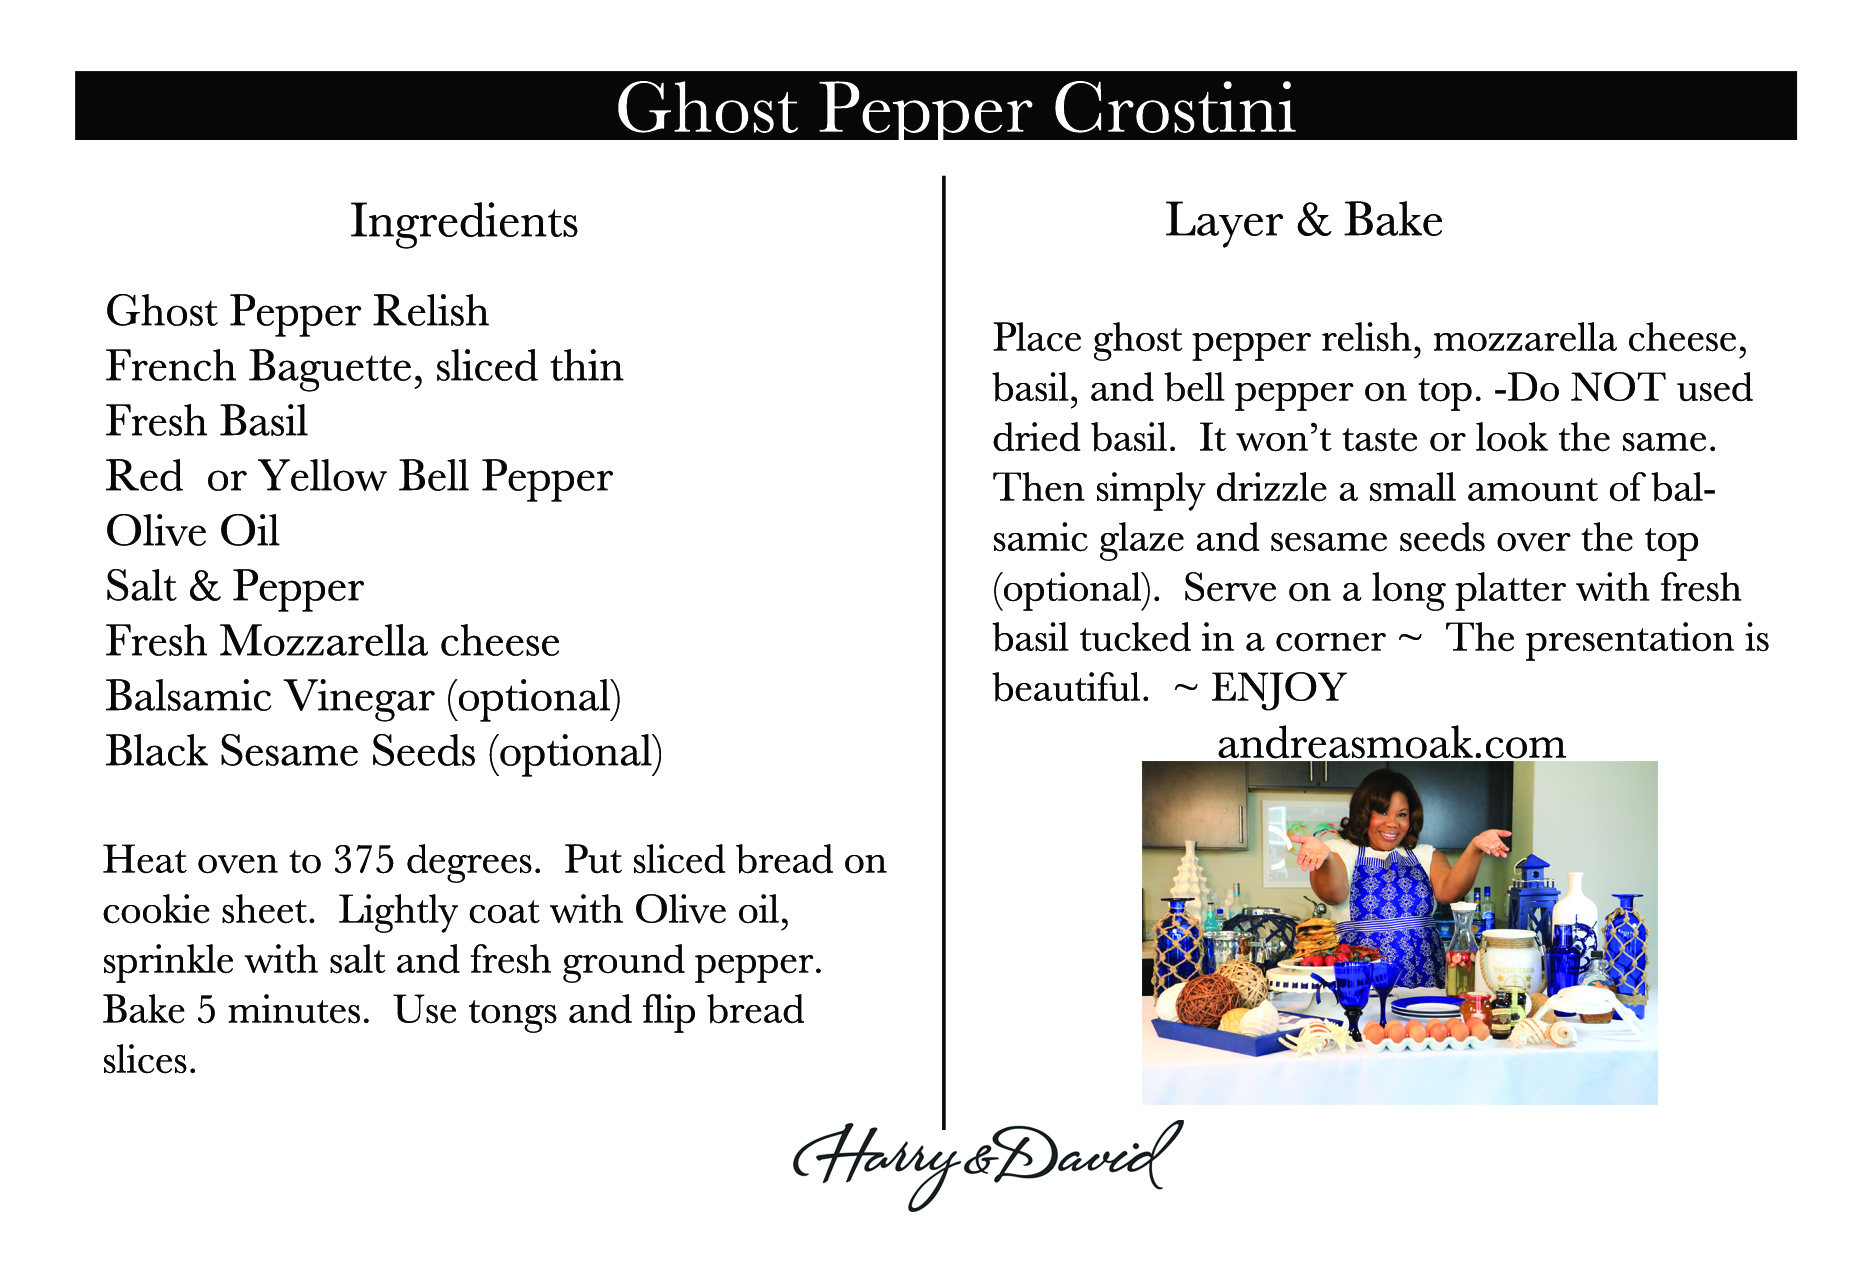 Ghost_Pepper_Crostini_Recipe_Card_Ingredients.jpg